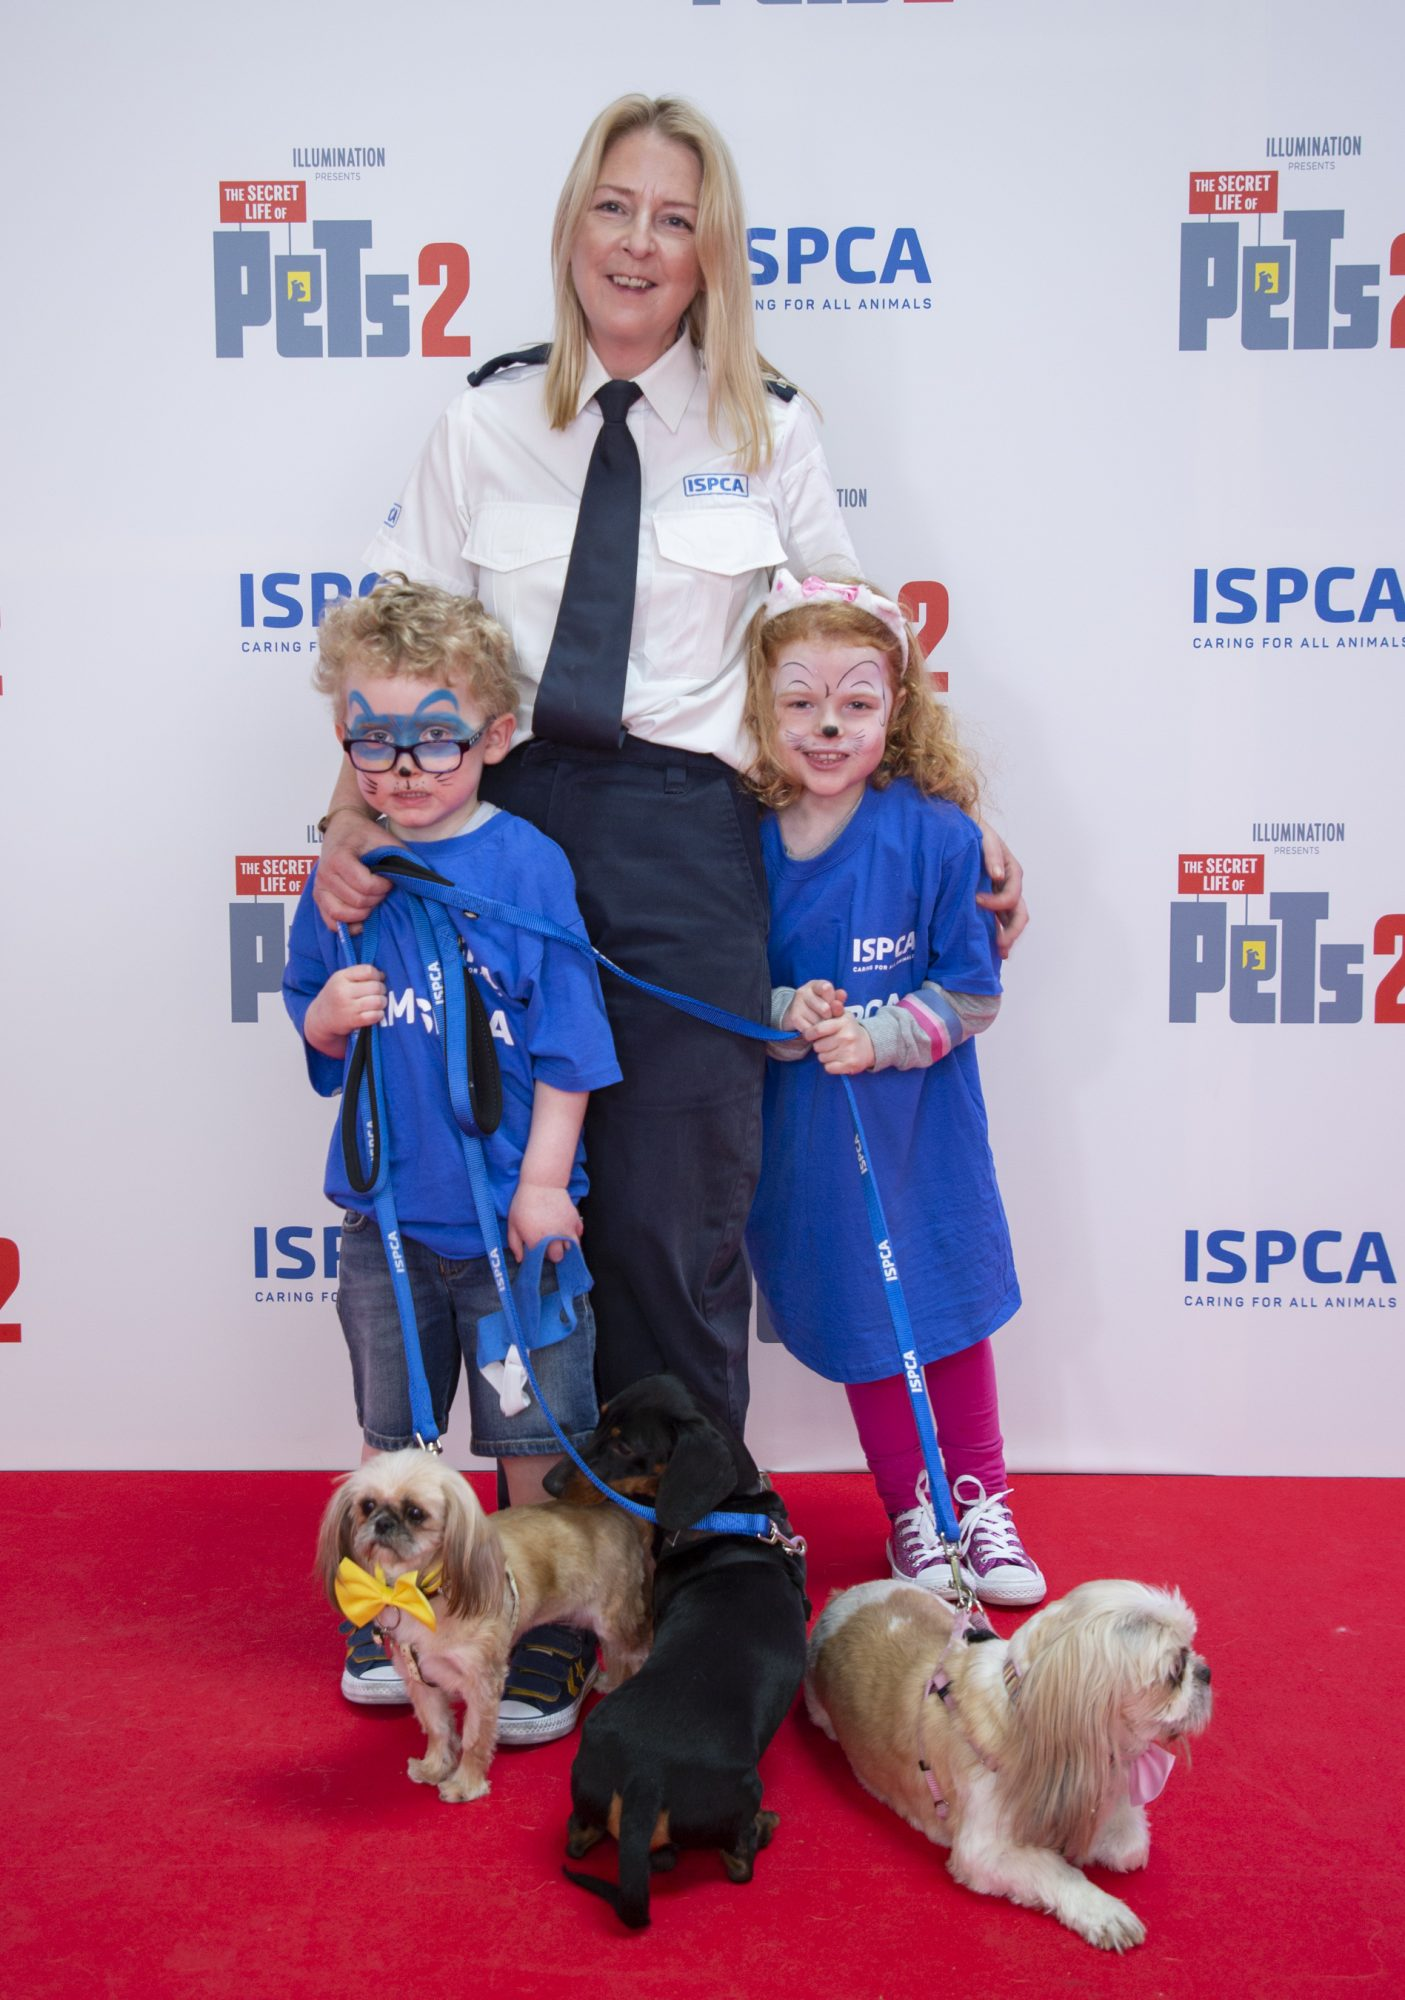 pictured at the Irish premiere screening of The Secret Life of Pets 2 at Odeon Point Square, Dublin hosted by Universal Pictures in association with the ISPCA. The Secret Life of Pets 2 is in cinemas from Friday May 24th. Photo: Anthony Woods